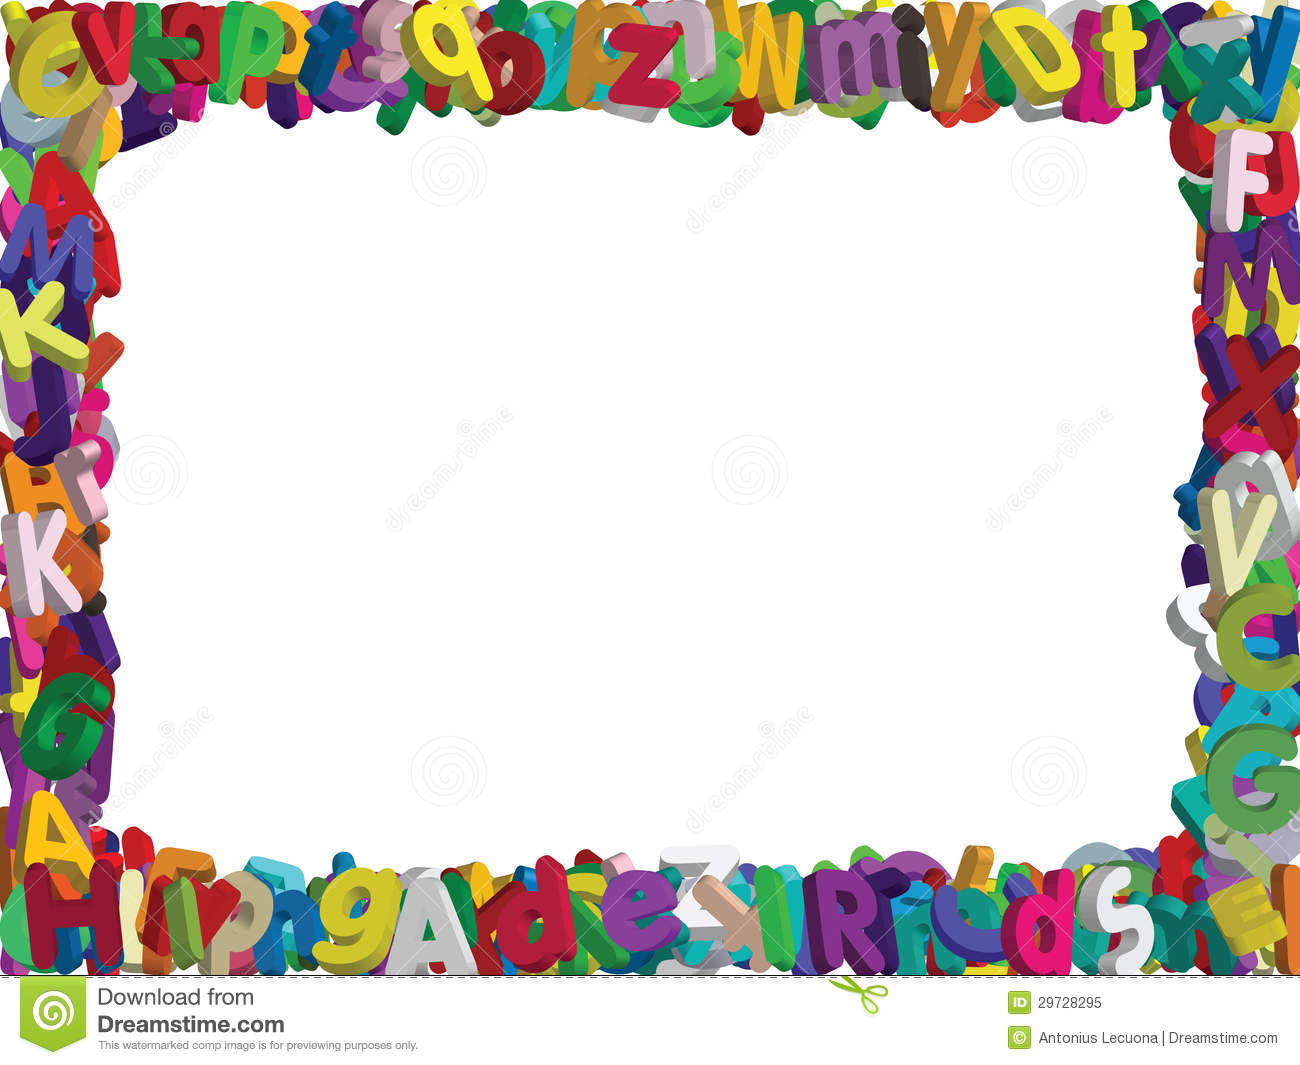 3D Alphabet Border- Vector Stock Vector. Illustration Of